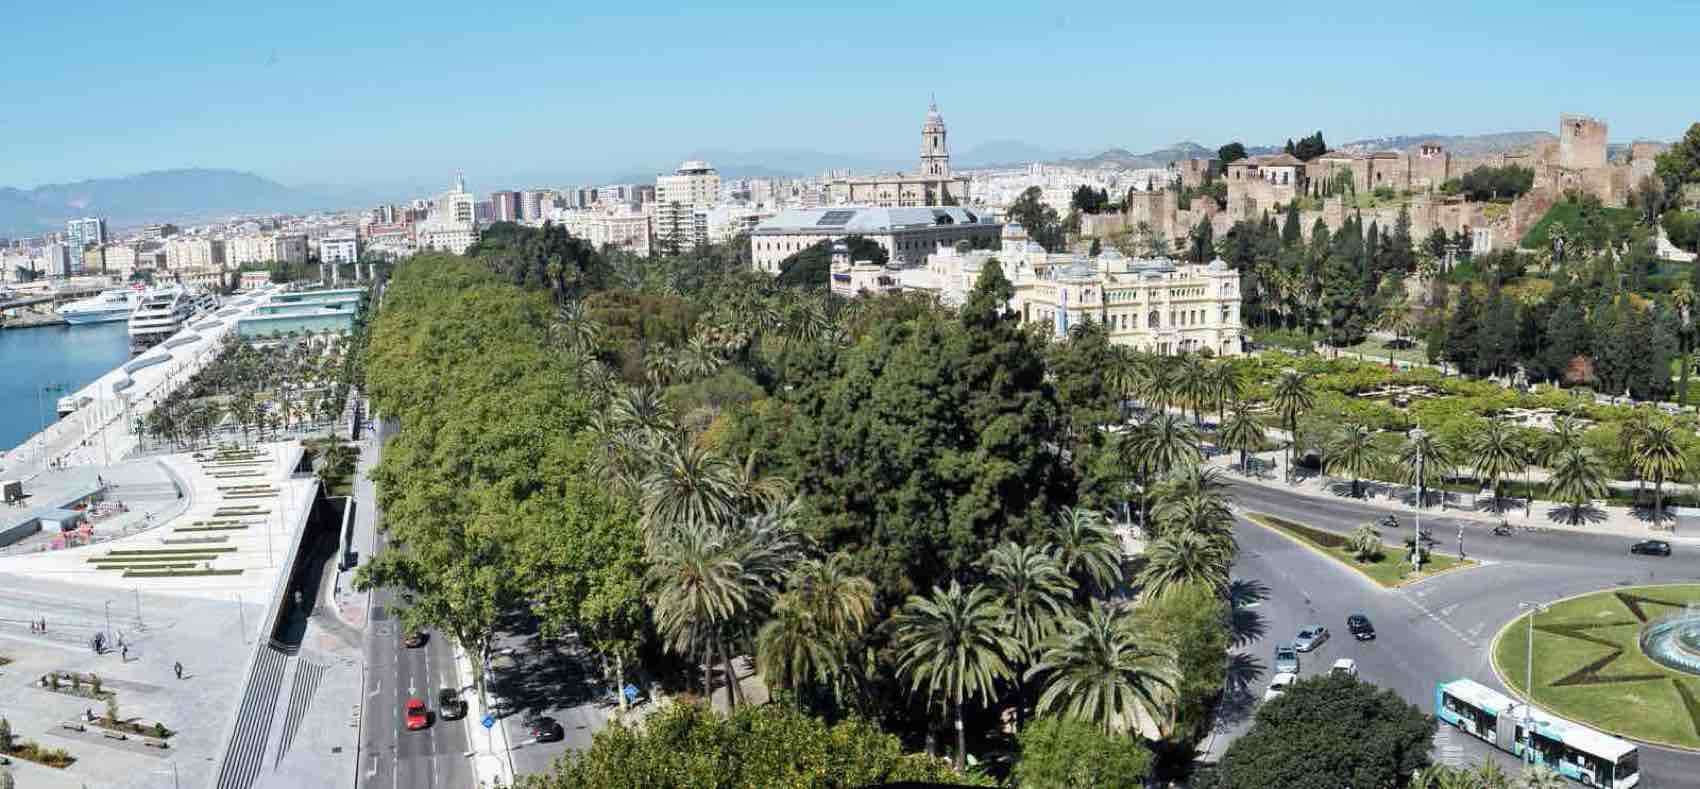 Central part of Malaga: The harbor, the park, Alcazaba and the tower at Malaga Cathedral